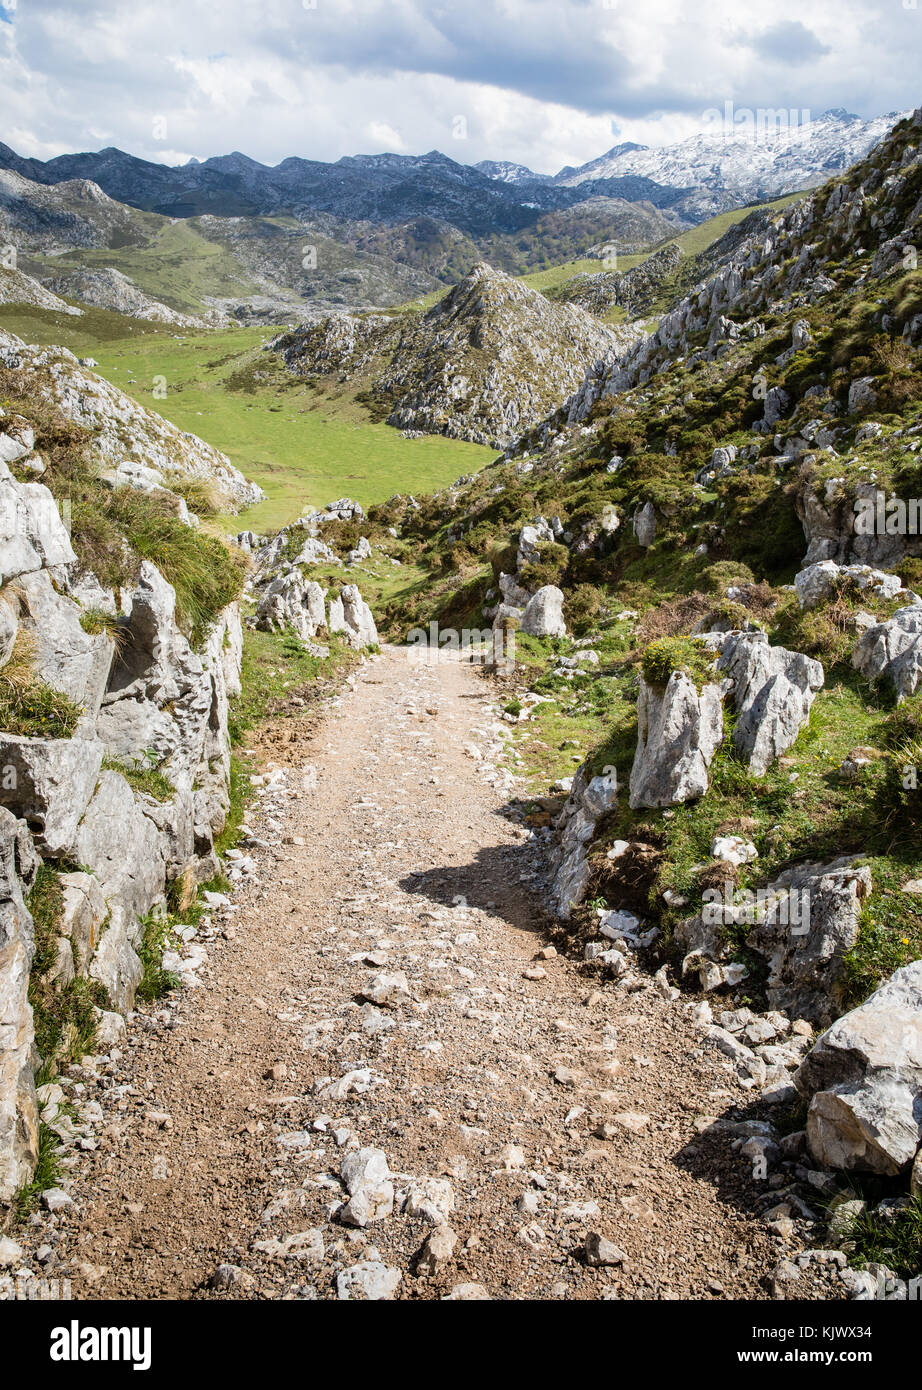 Track descending into the foothills of the Picos de Europa near Bobia and the Covadonga Lakes  in northern Spain - Stock Image